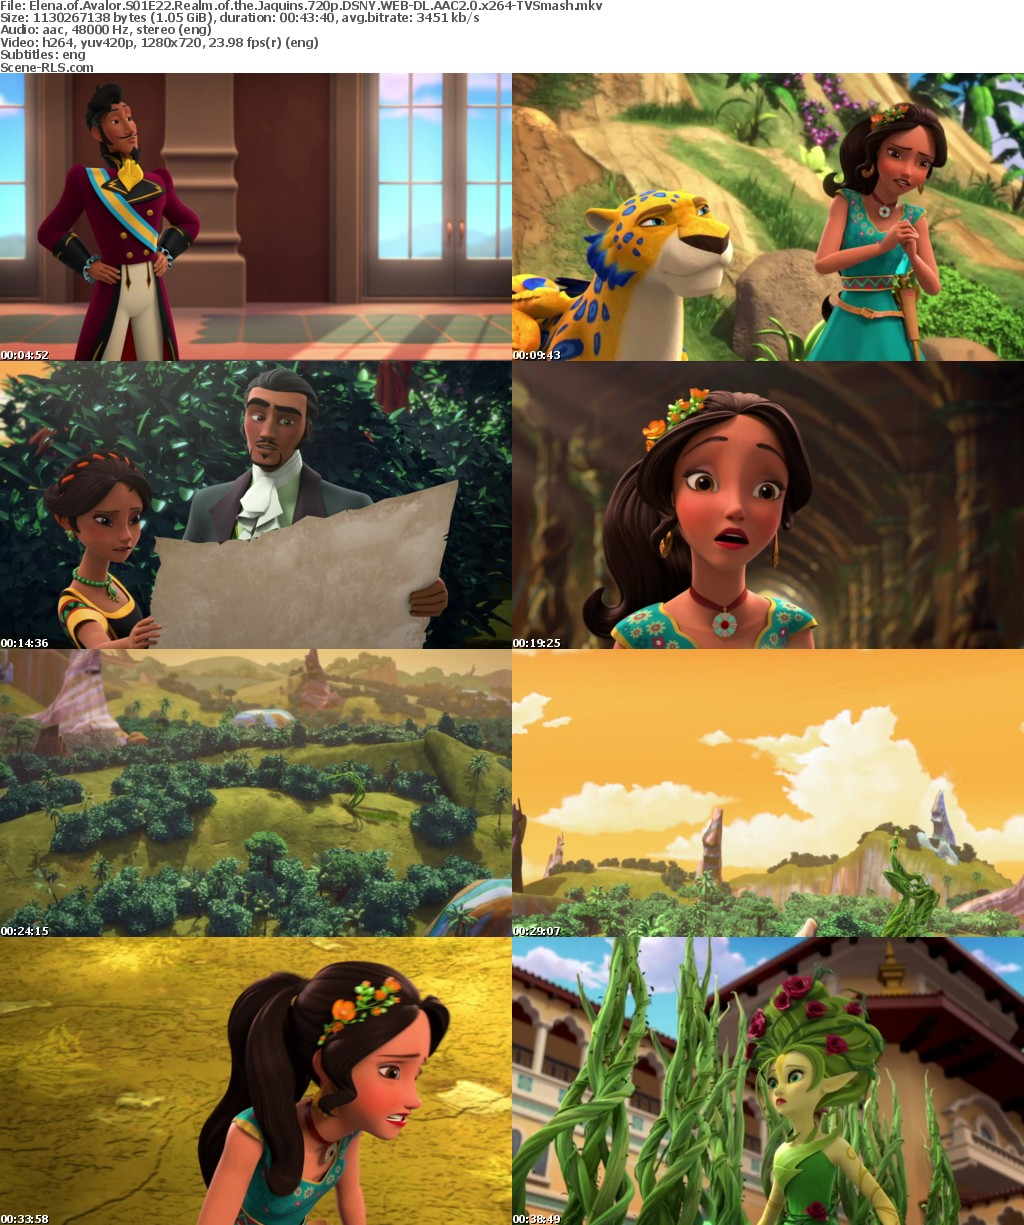 elena of avalor season 1 episode 22 realm of the jaquins